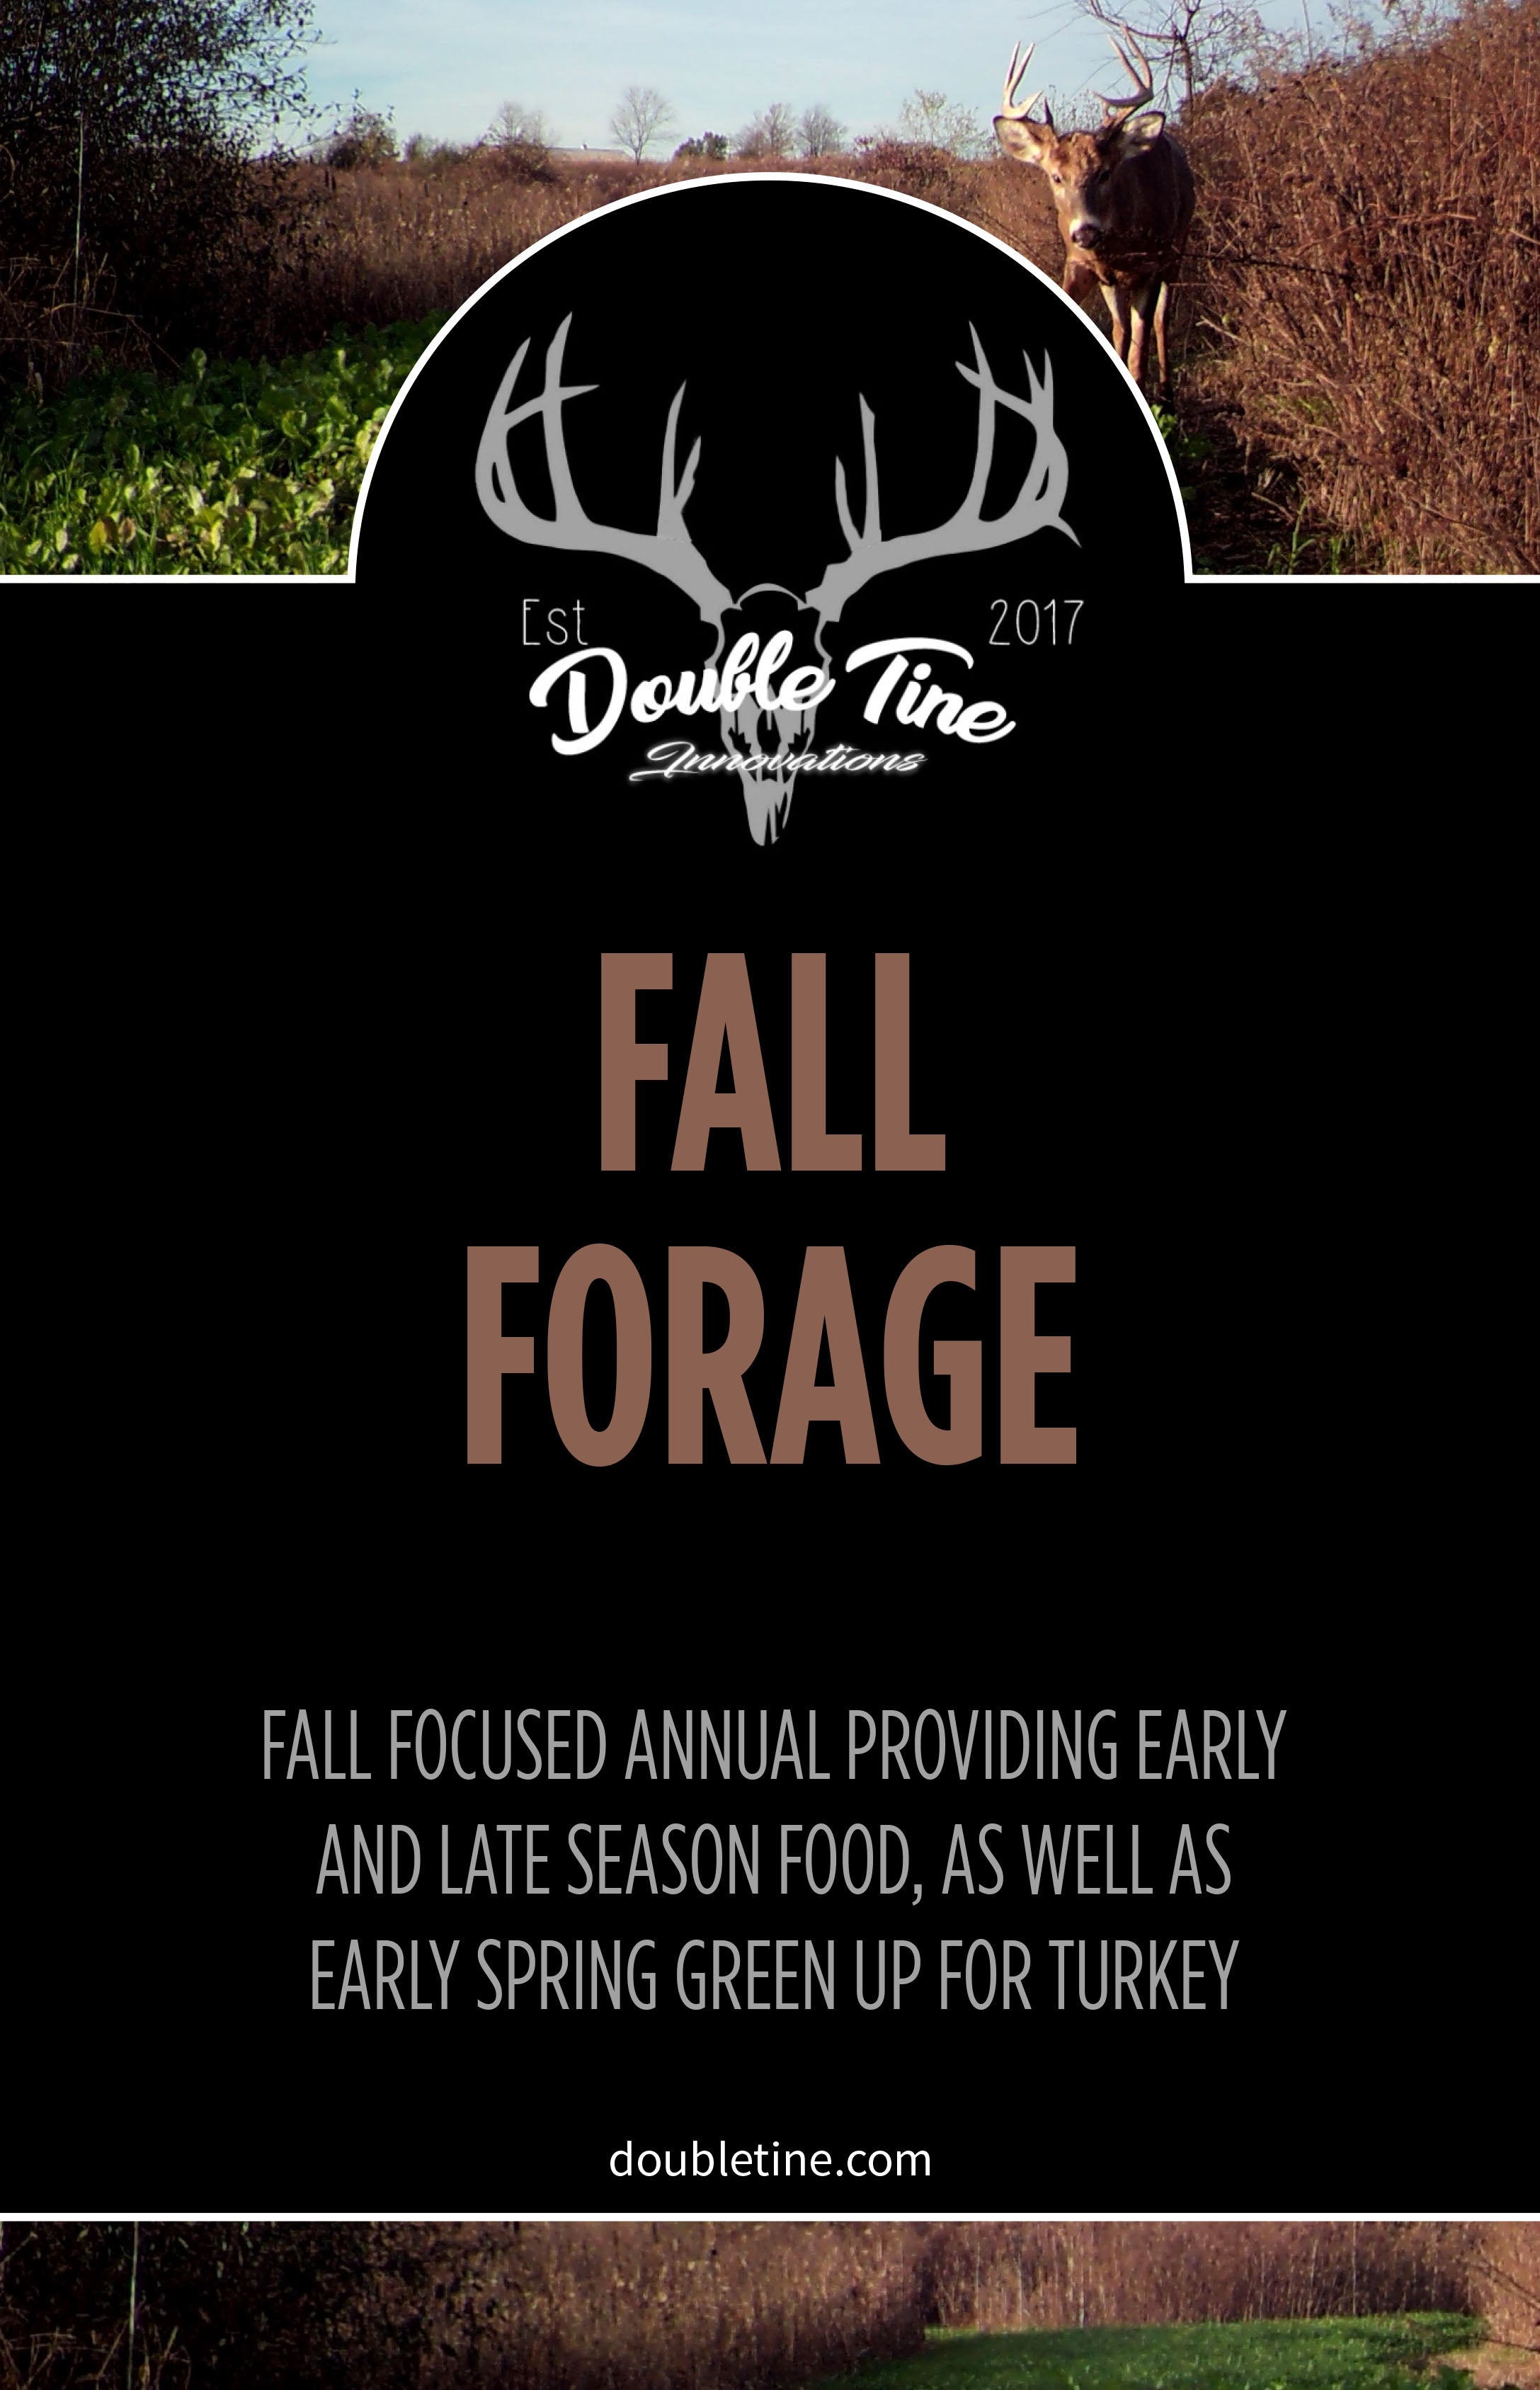 Fall Forage - Double Tine Innovations